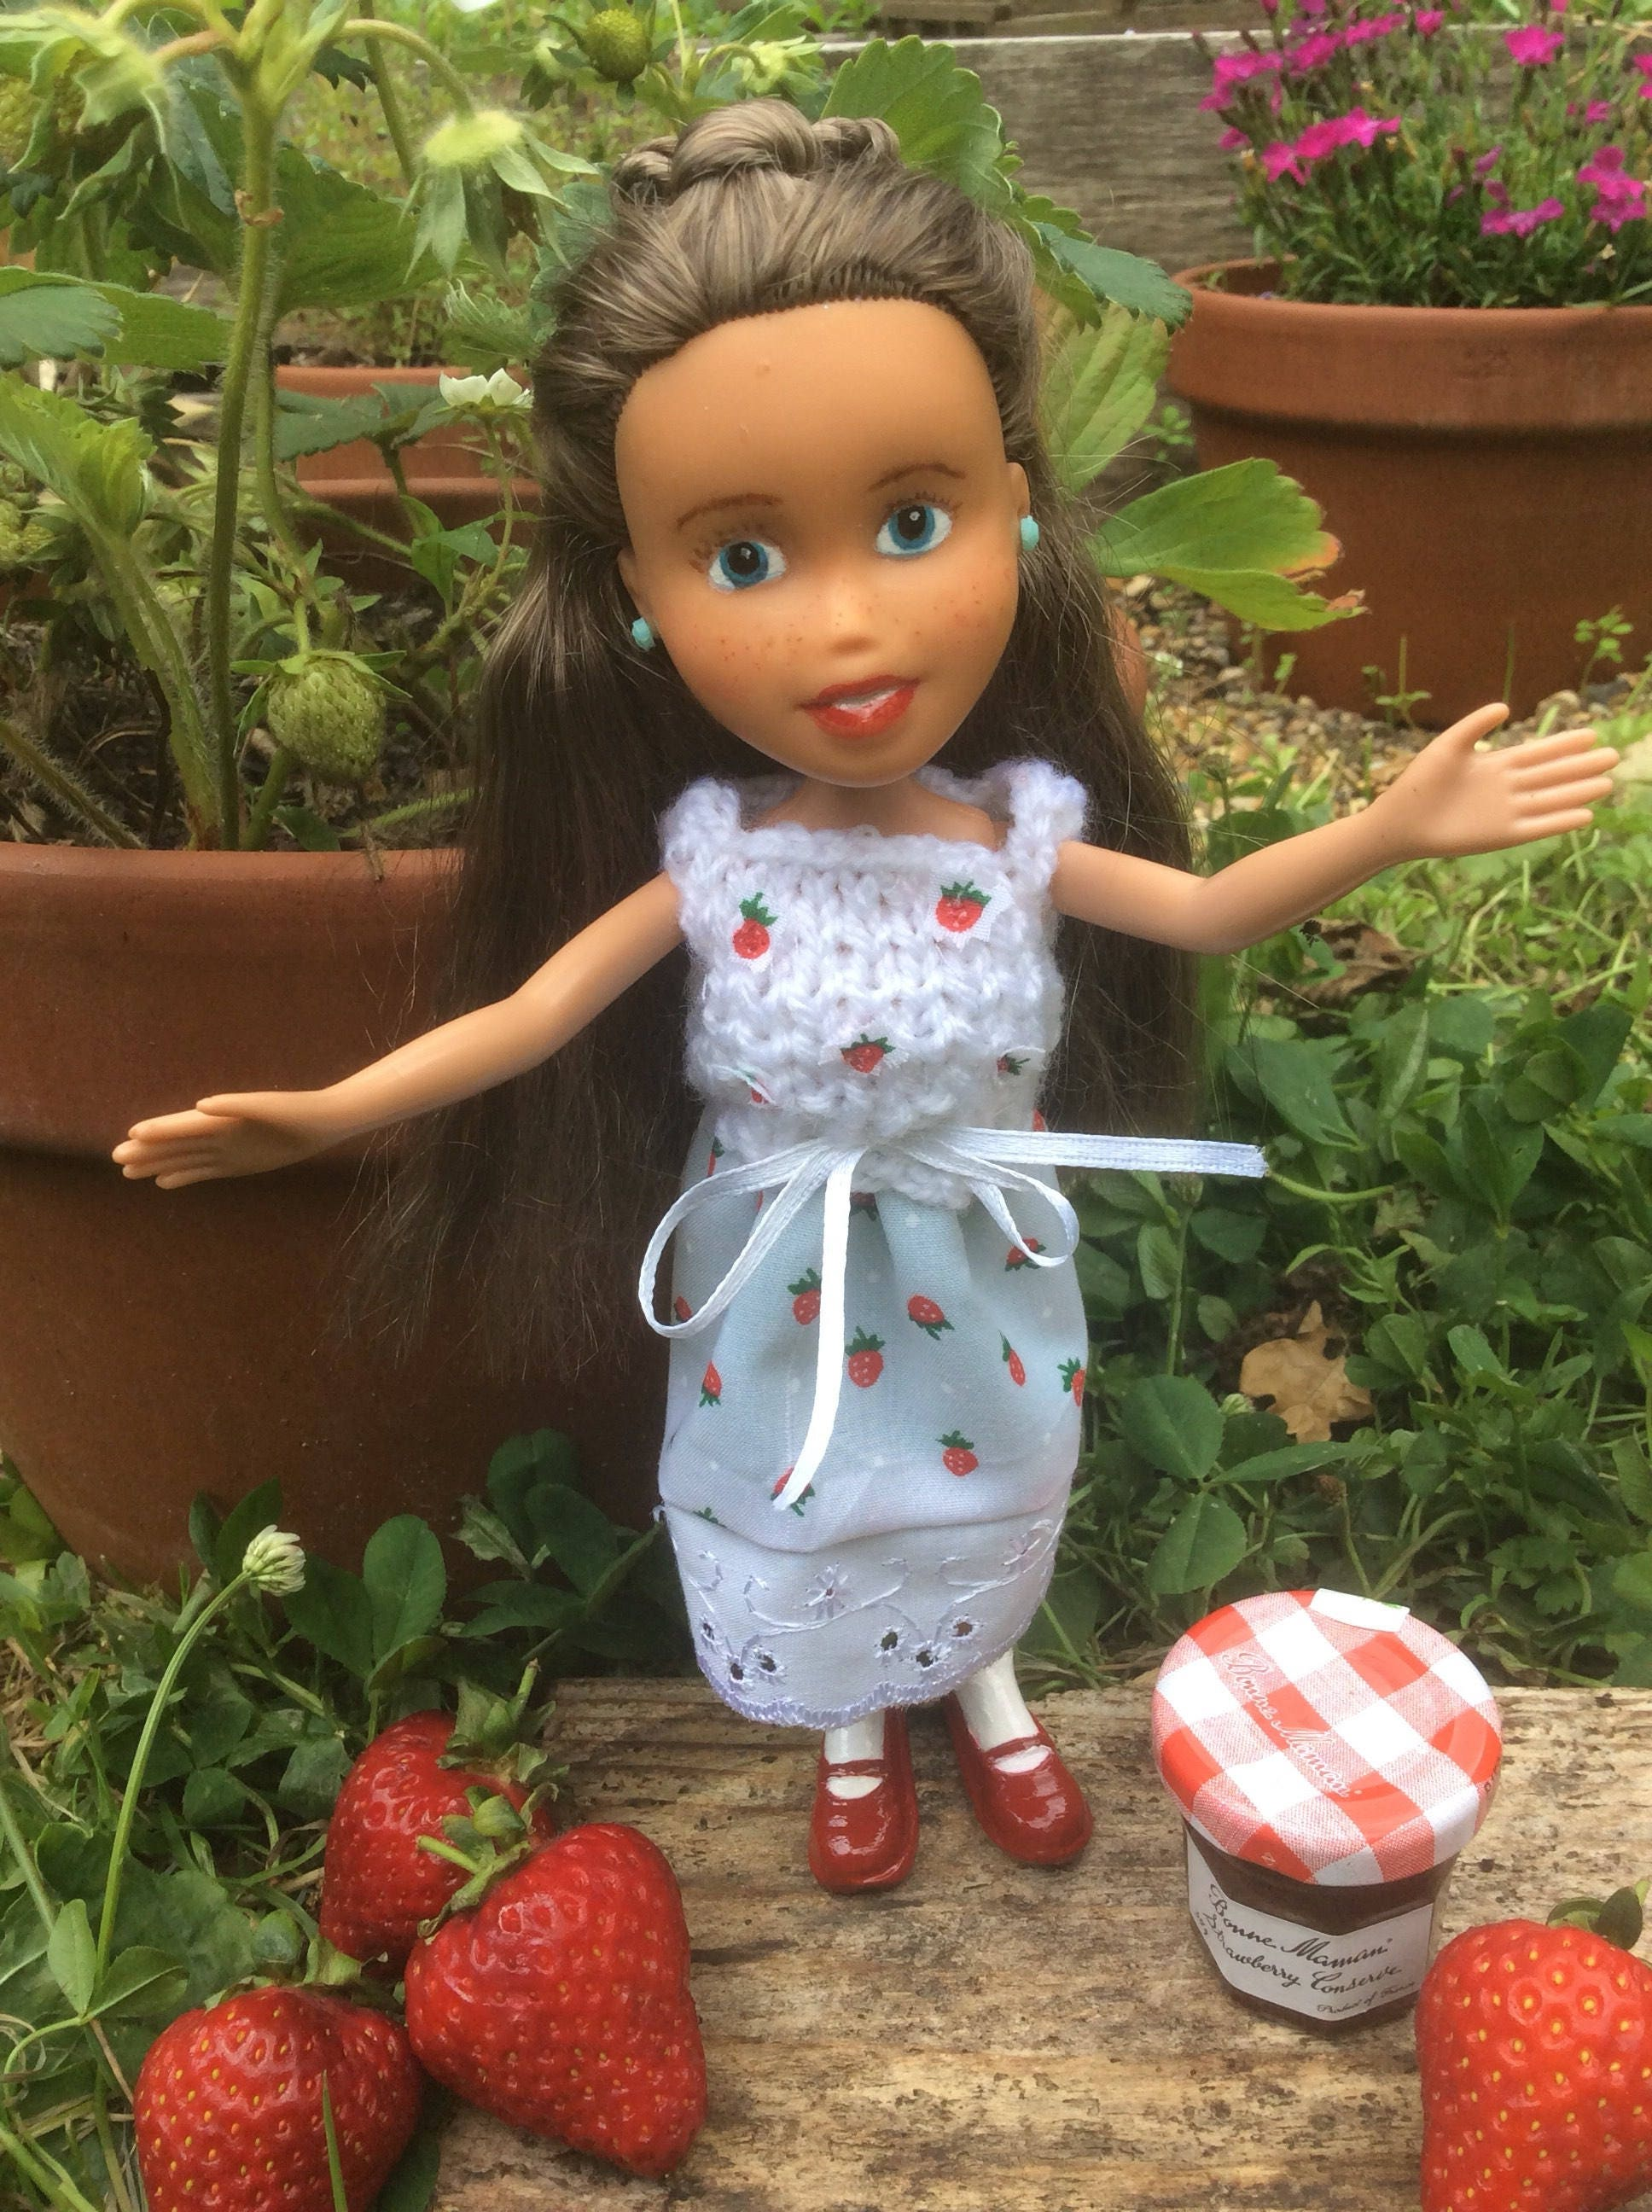 Repaint Bratz Doll Summer Strawberry OOAK Doll